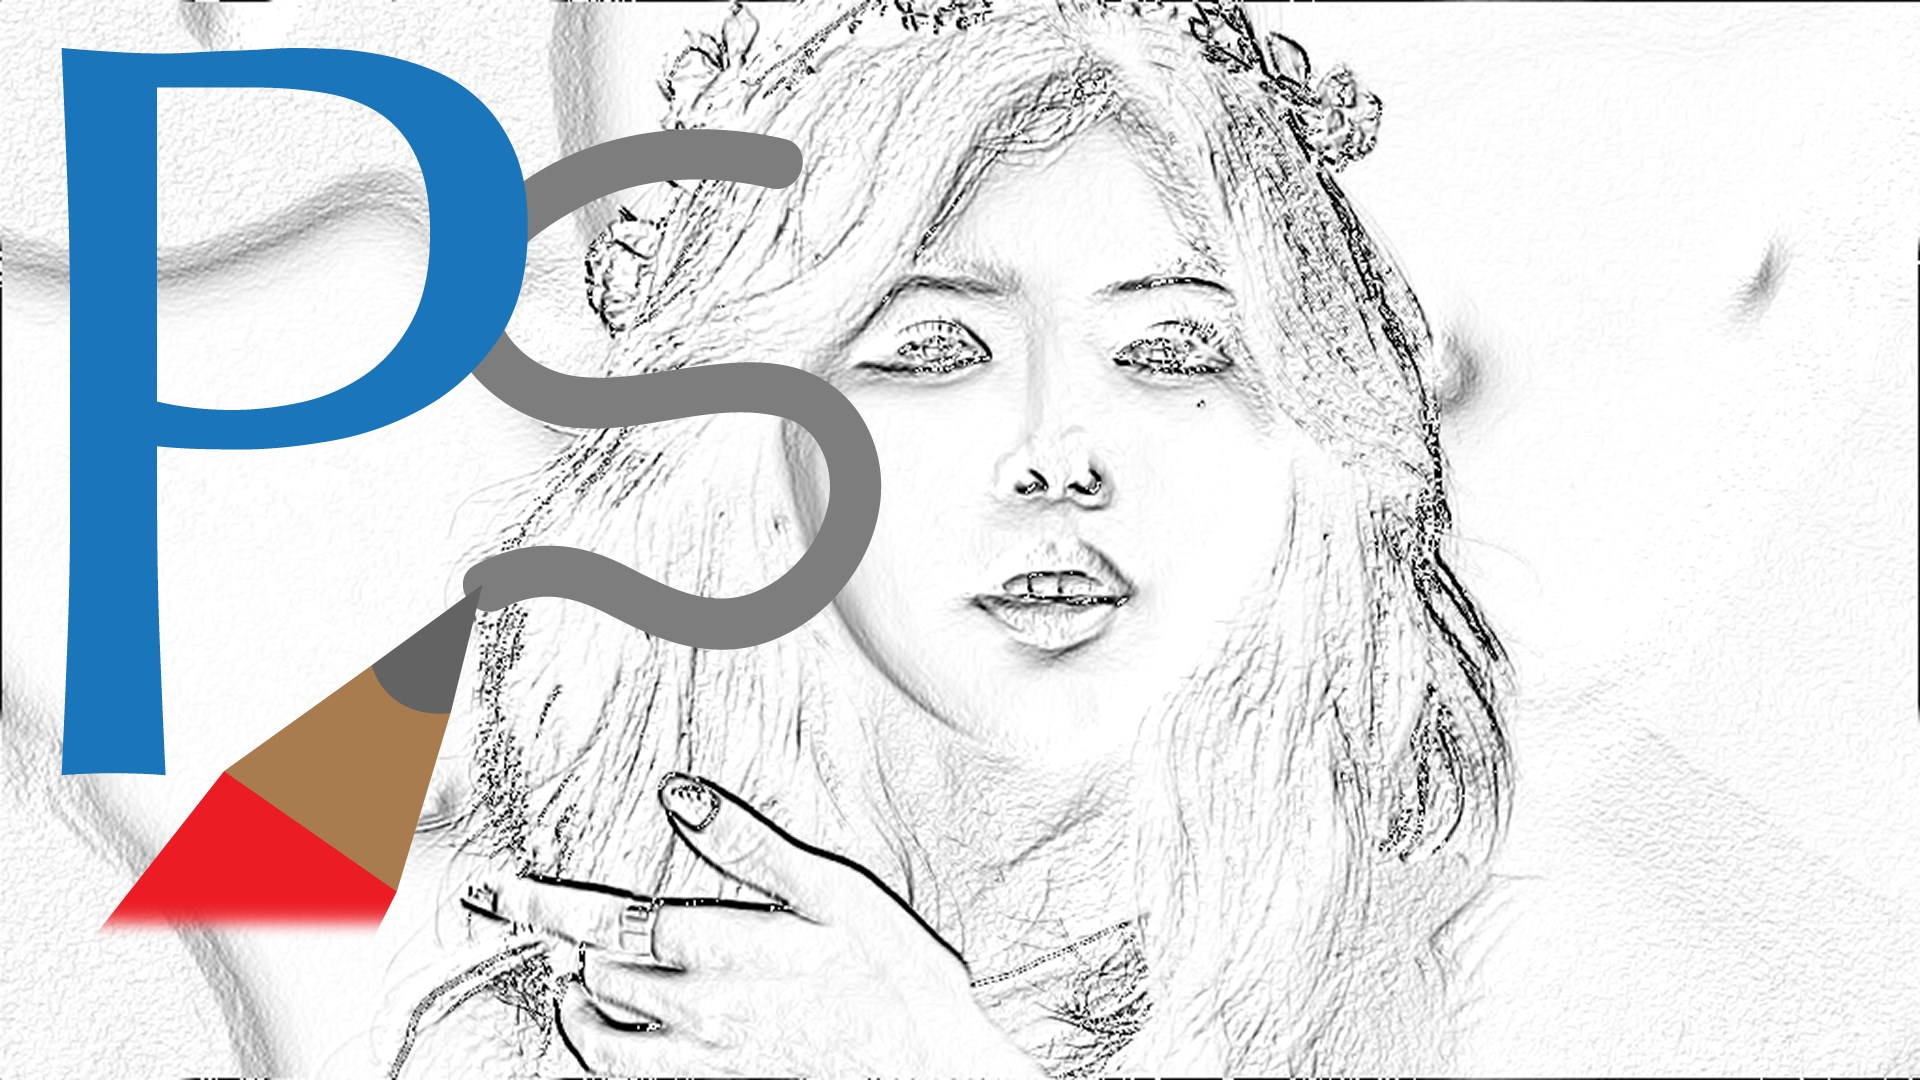 Photo To Pencil Sketch App